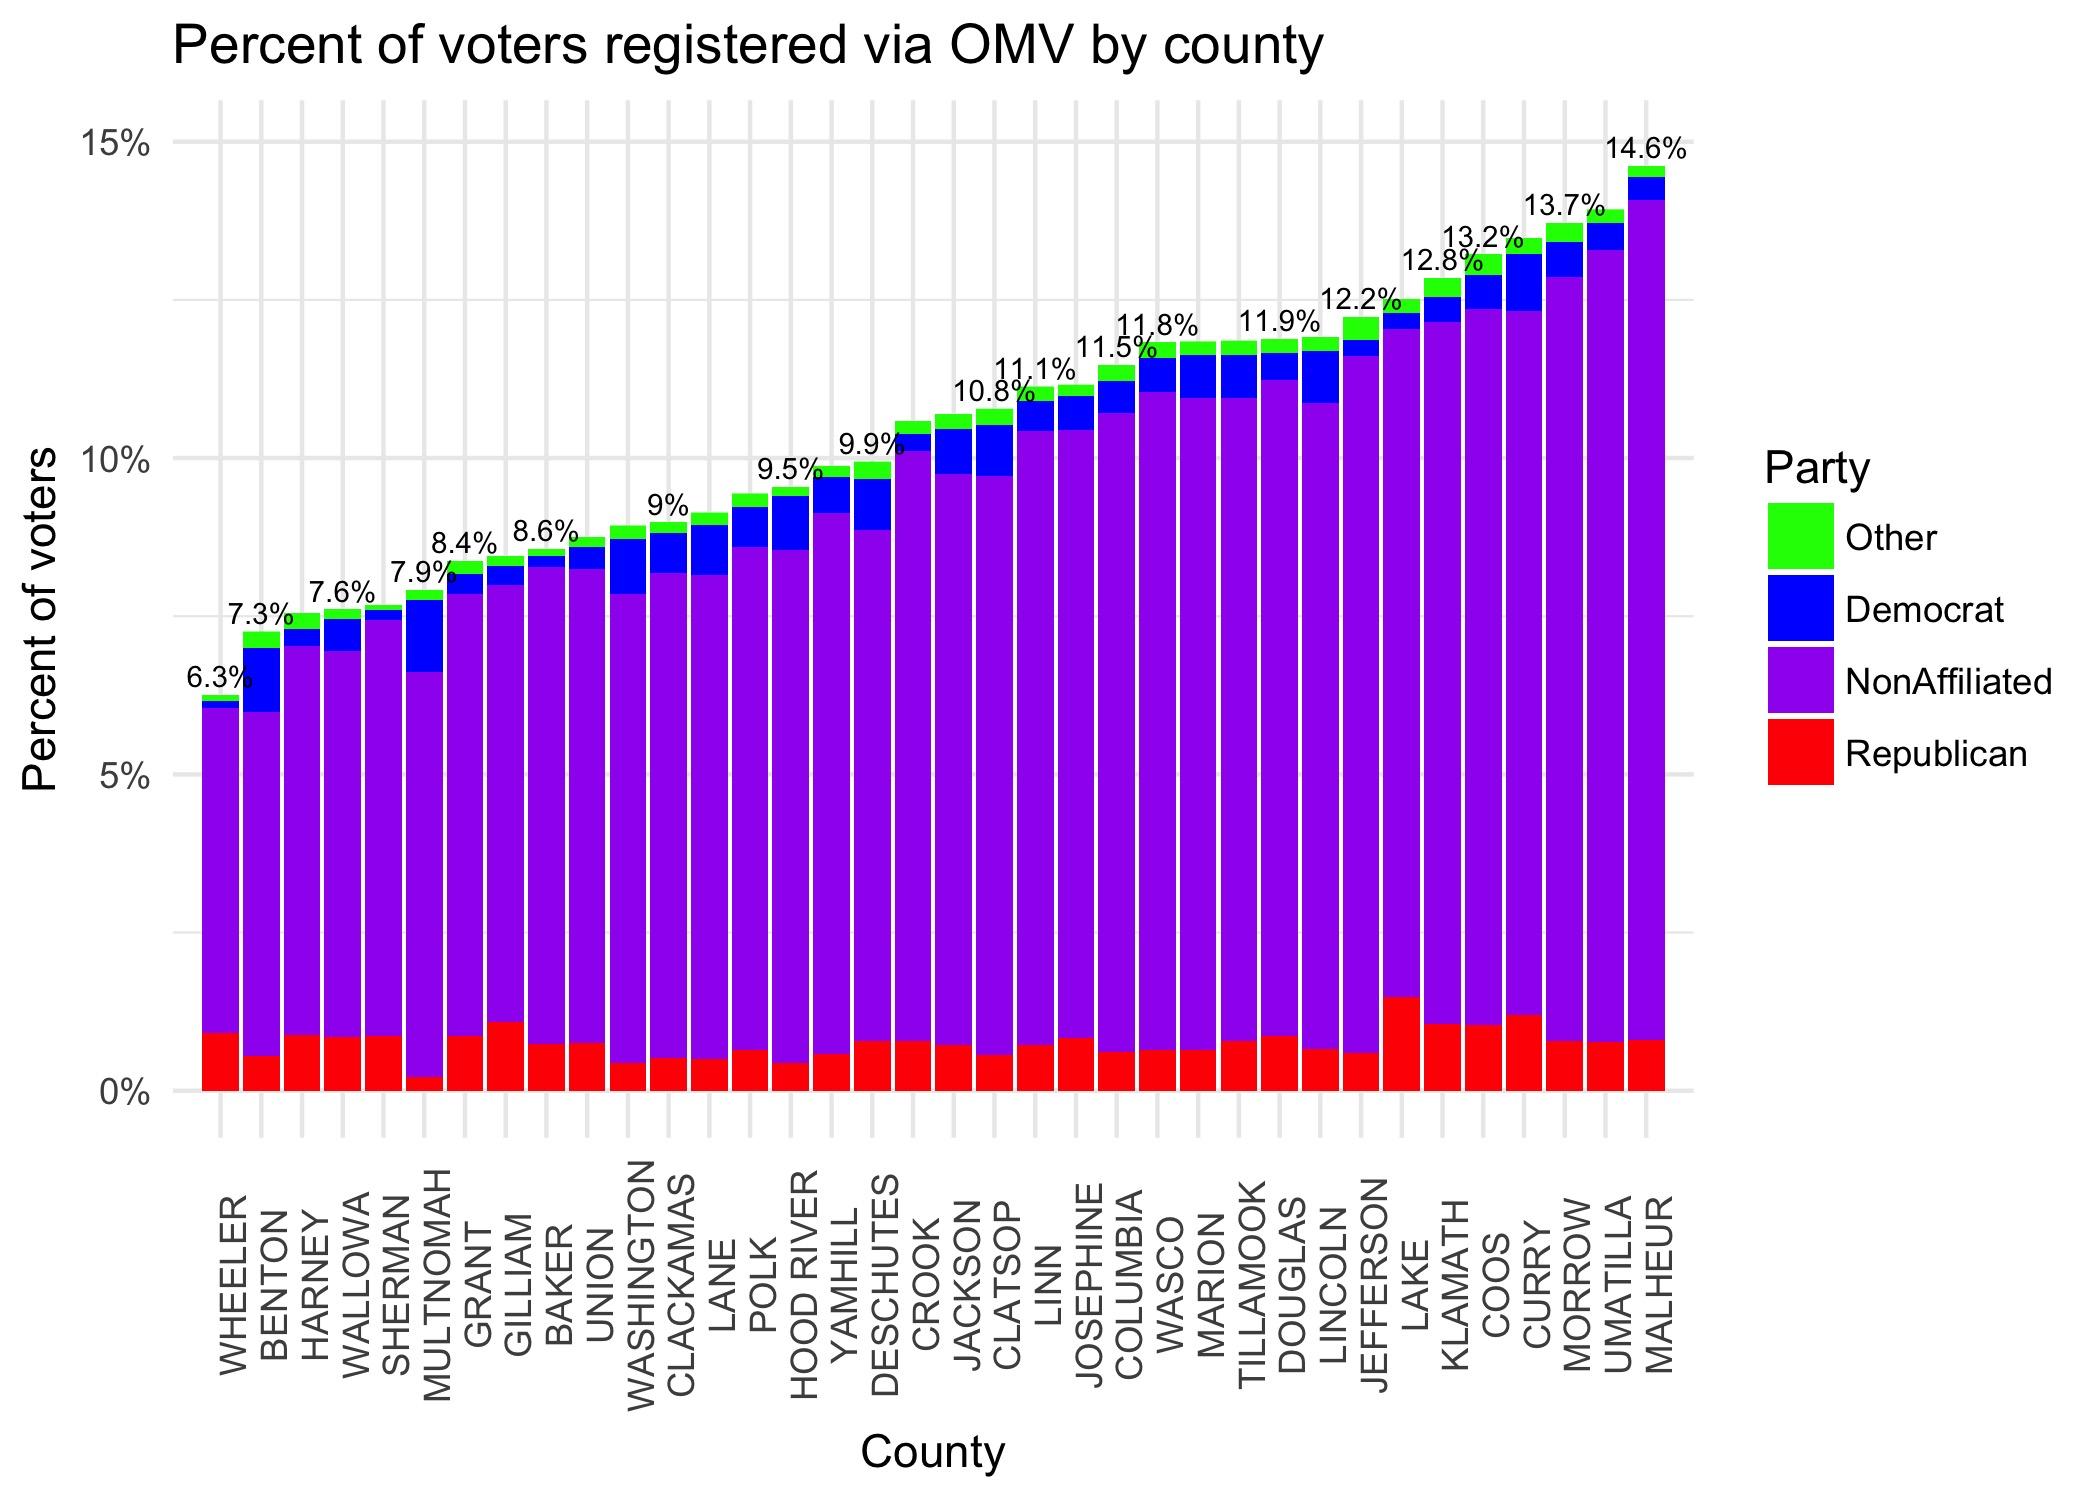 Bar plot of percent of voter registered via OMV by county